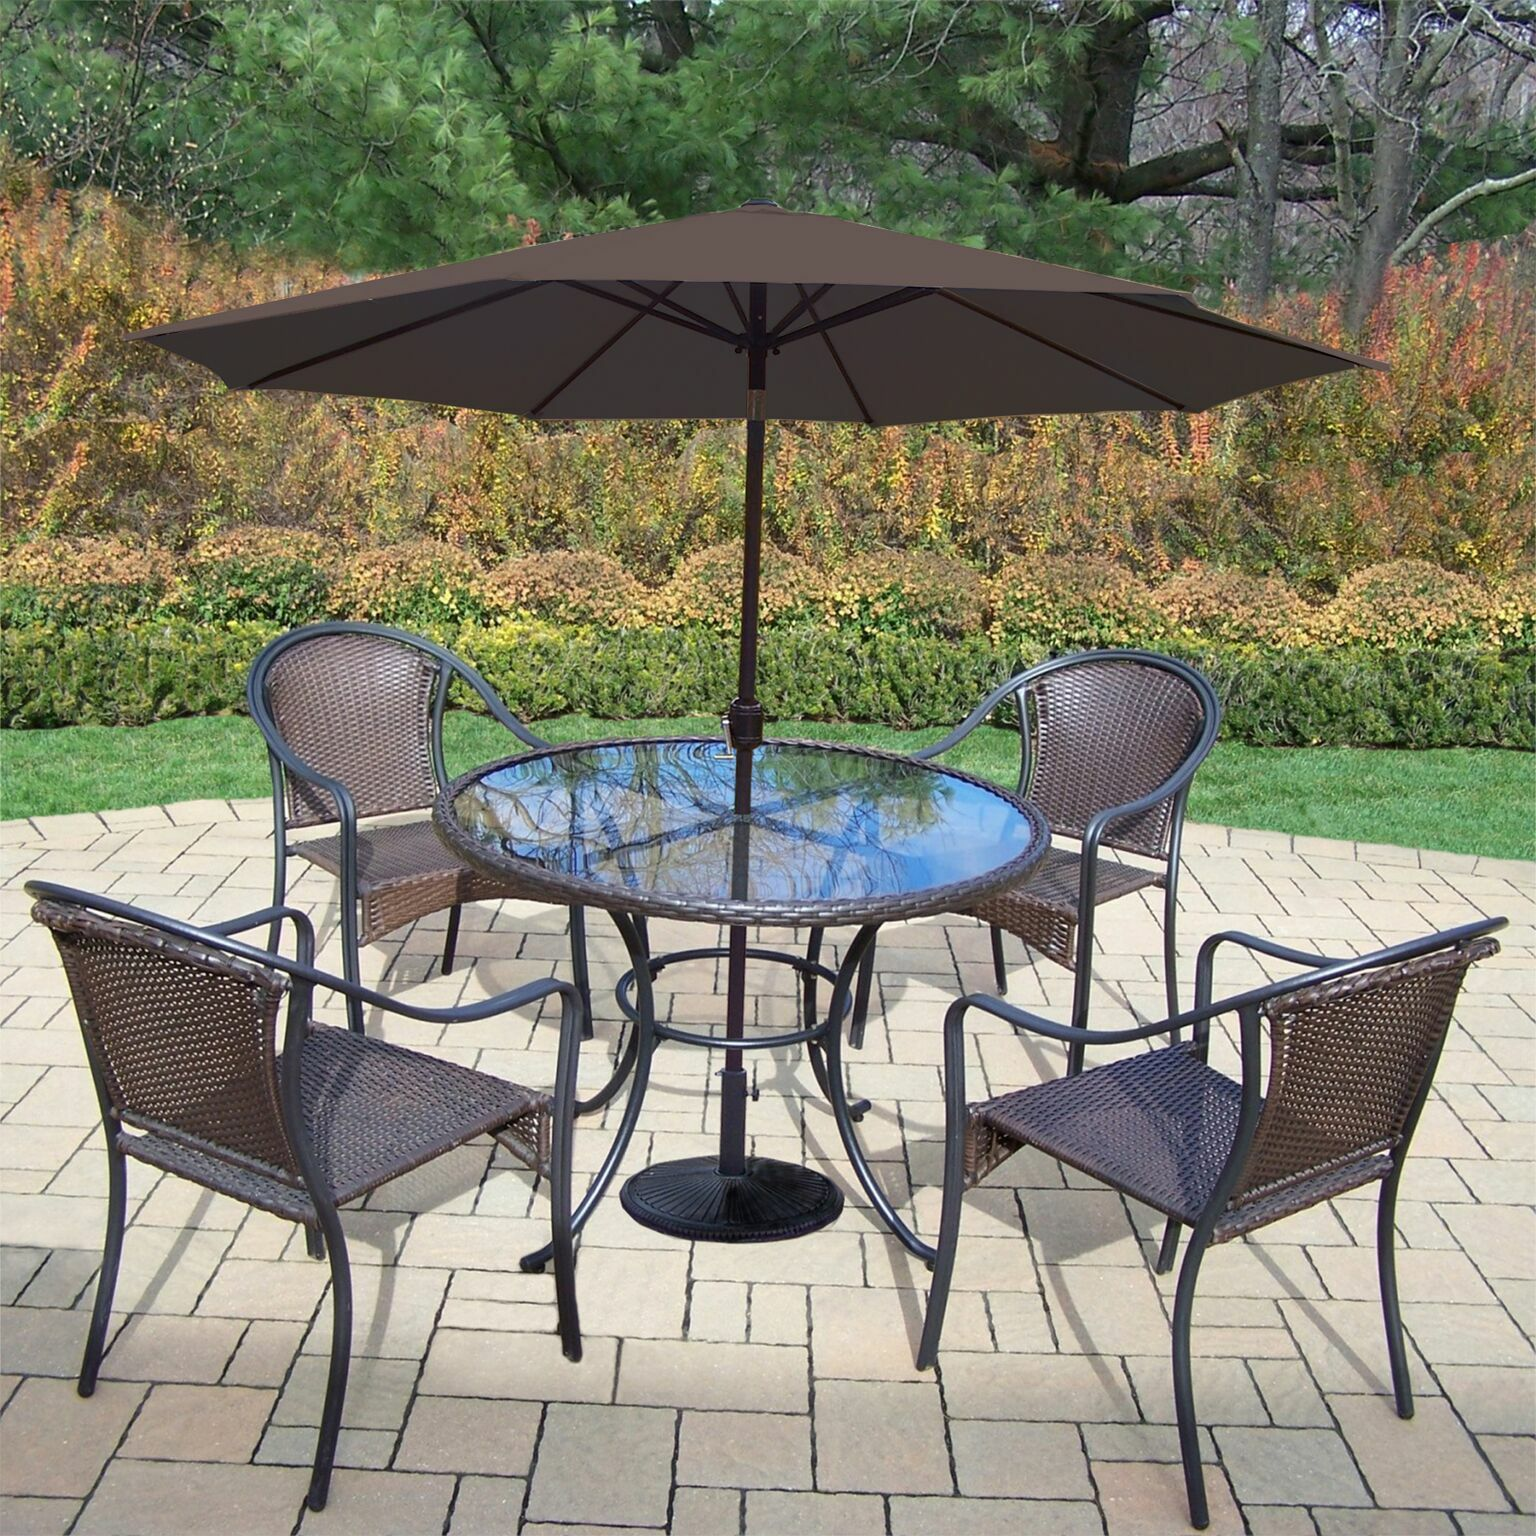 Parishville 5 Piece Durable All Weather Resin Wicker Dining Set with Umbrella Umbrella Color: Brown